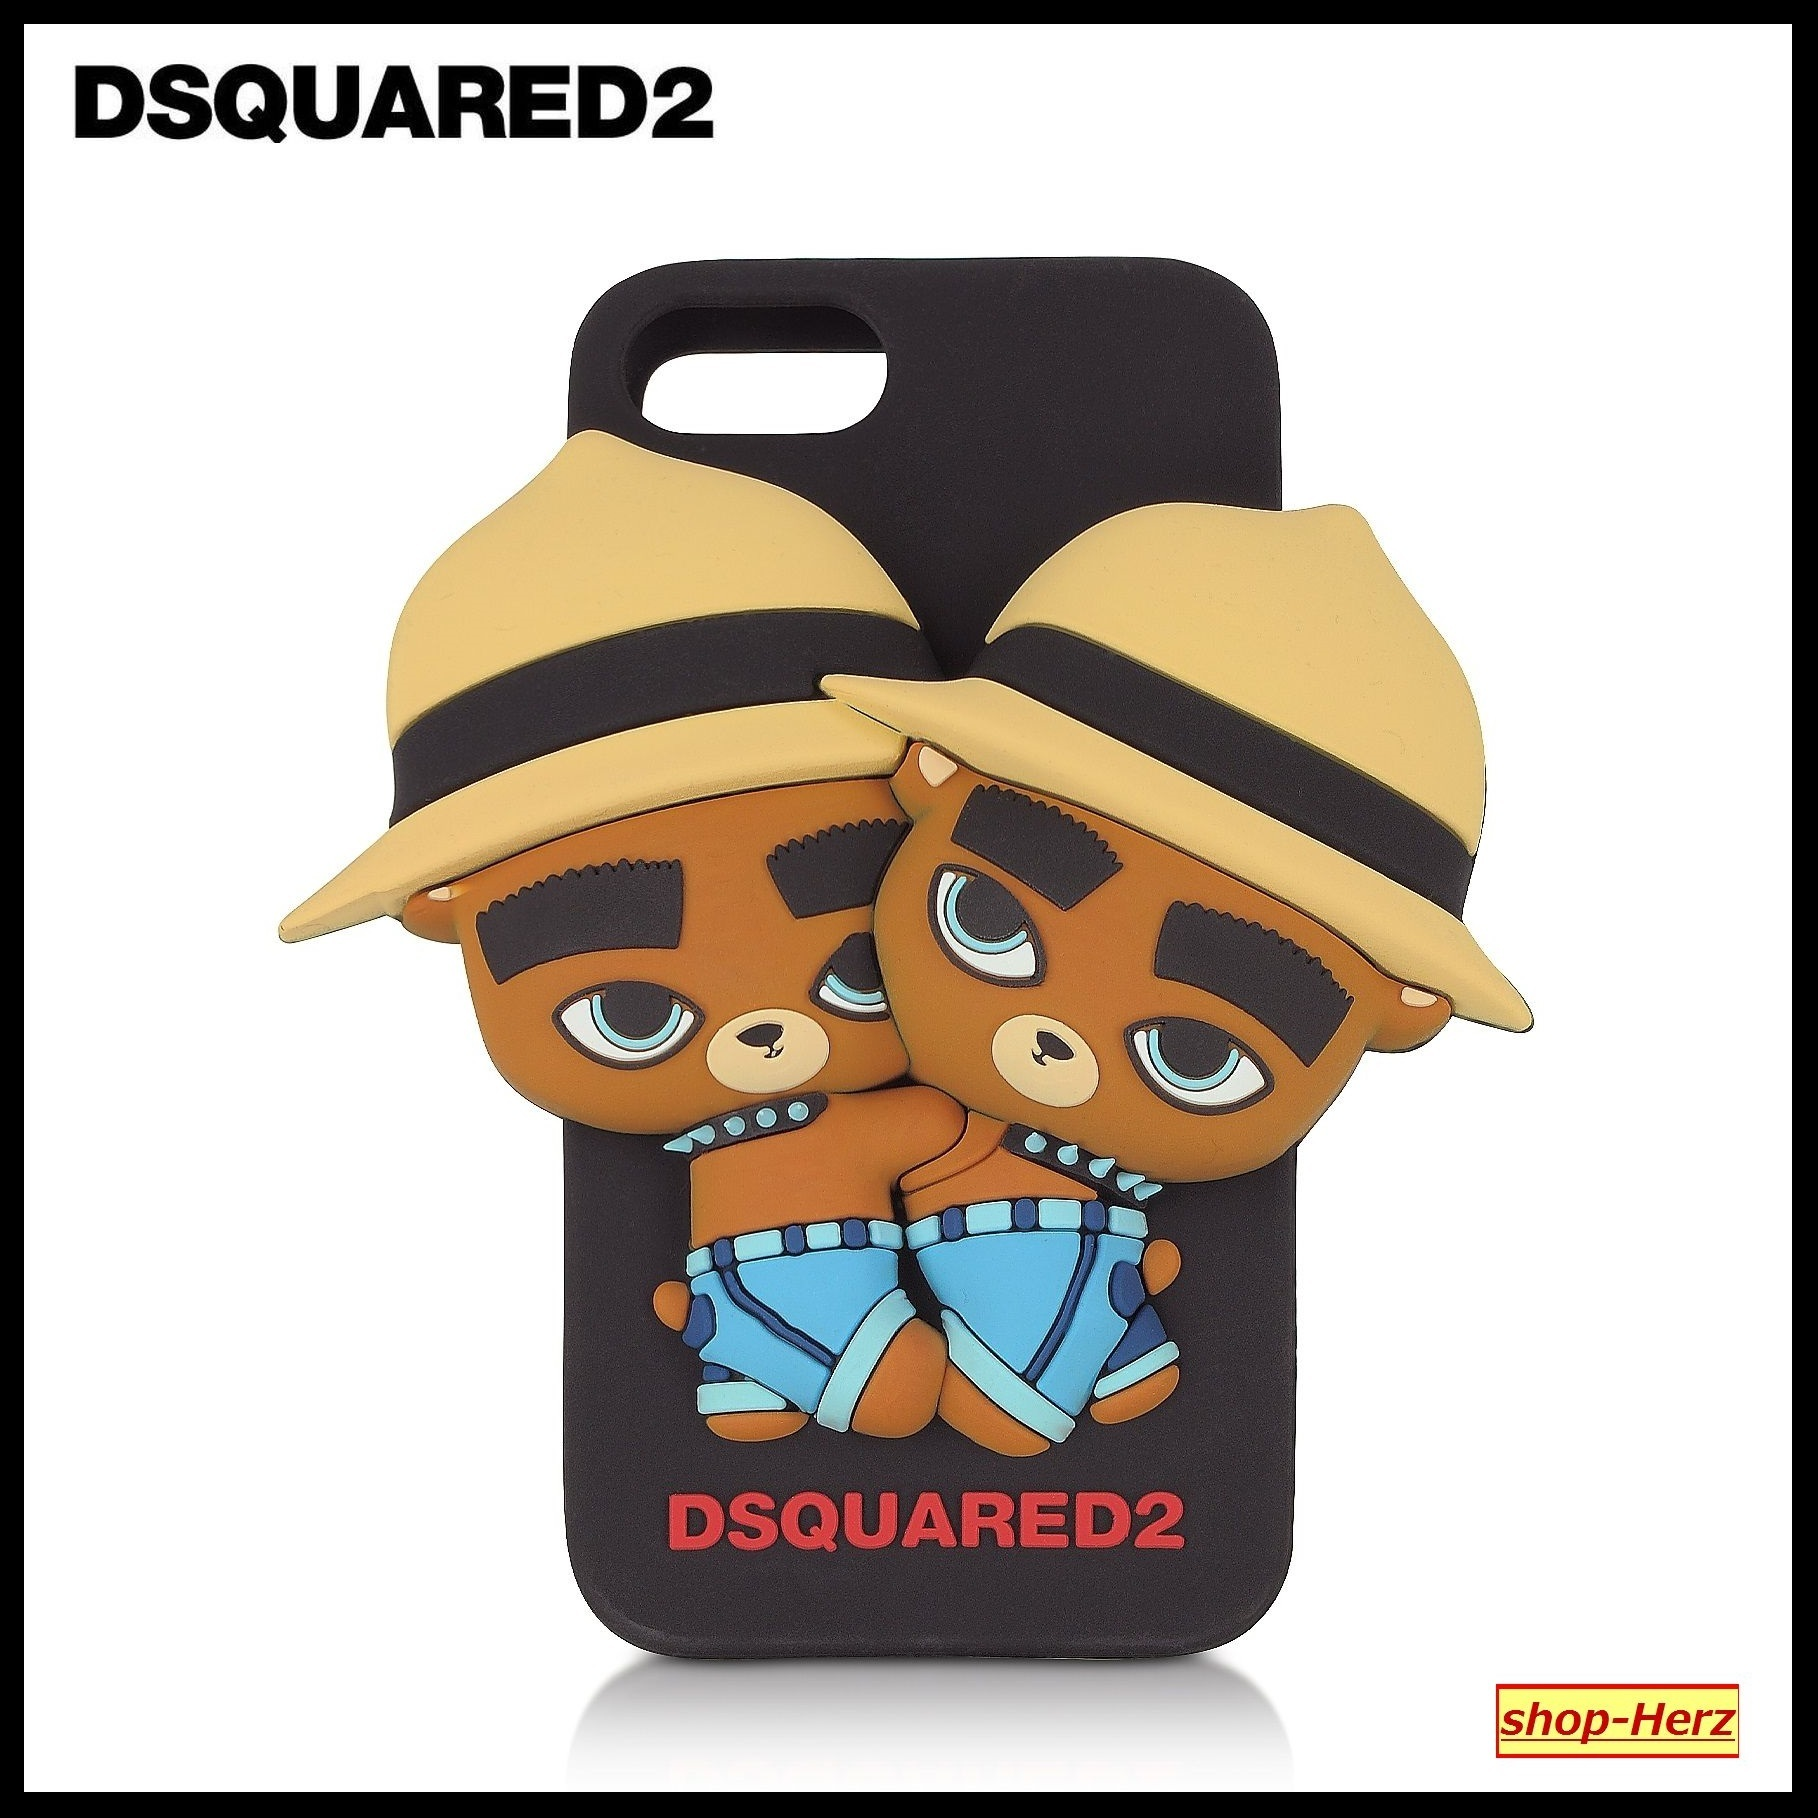 ★D SQUARED2★ Black Silicone iPhone7 ケース 関税込